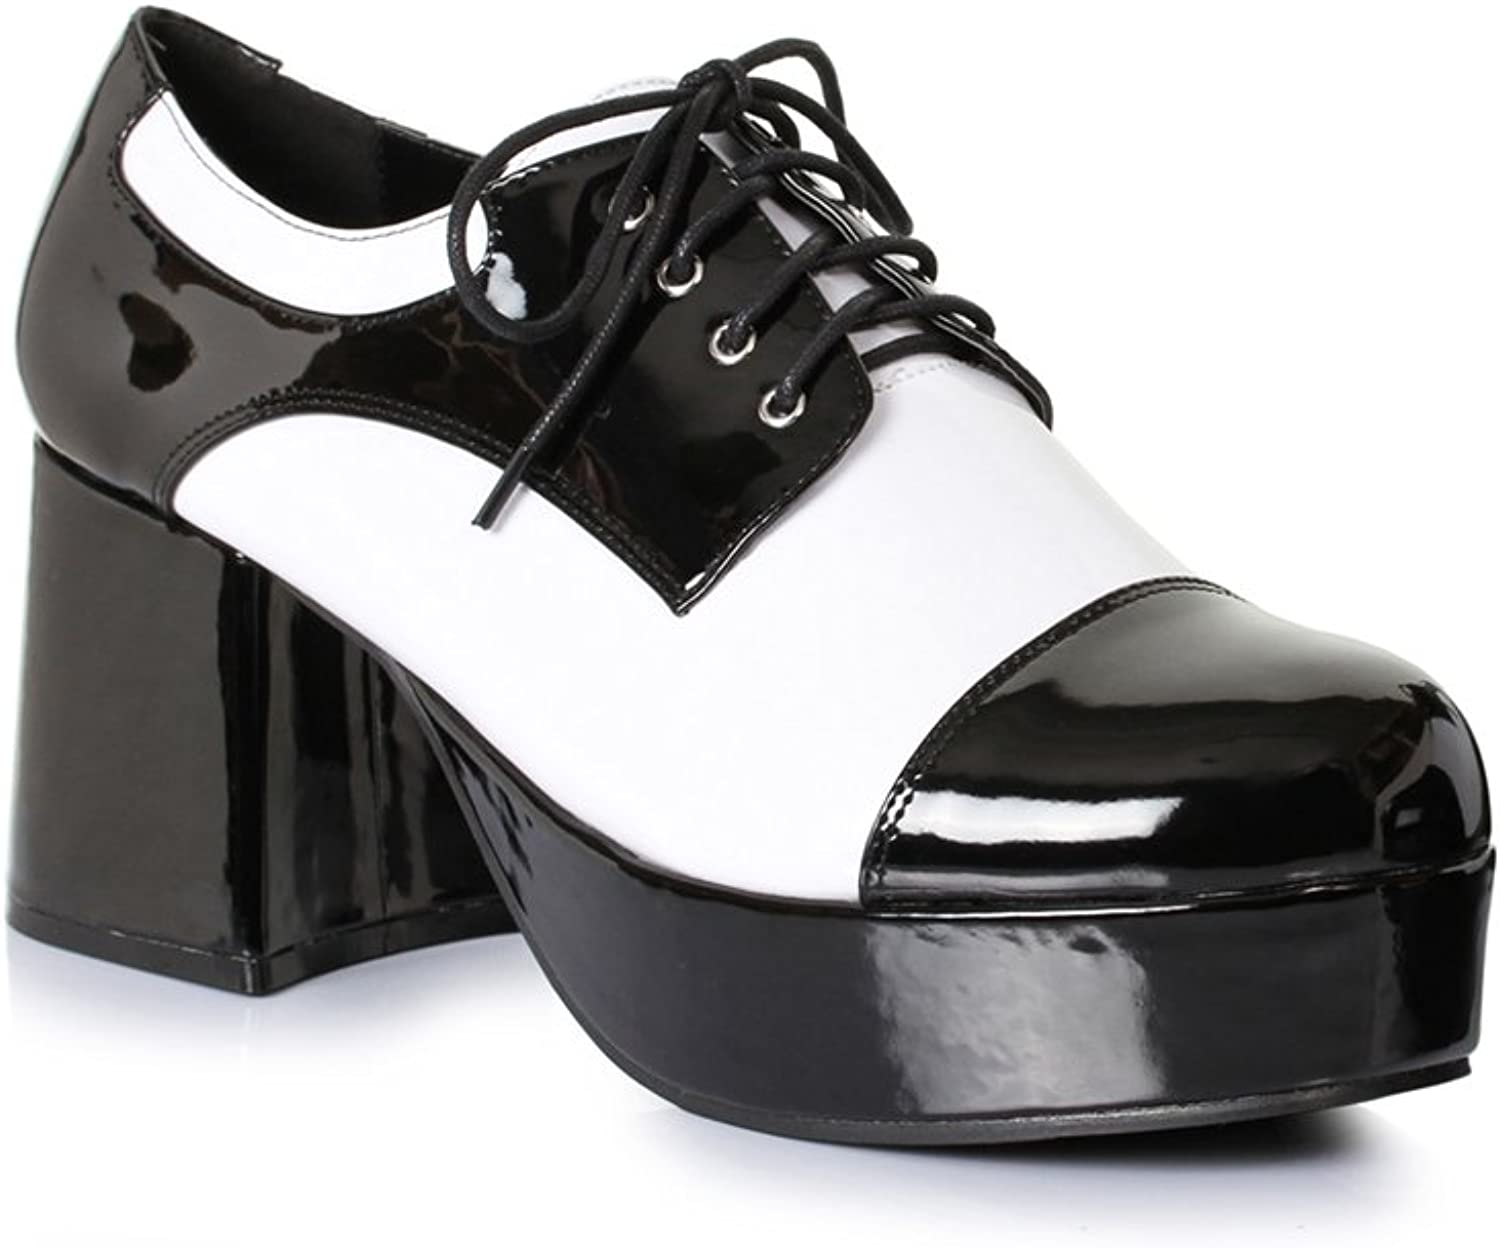 Mens Freddy 1970s Platform 3  Heel Black & White shoes